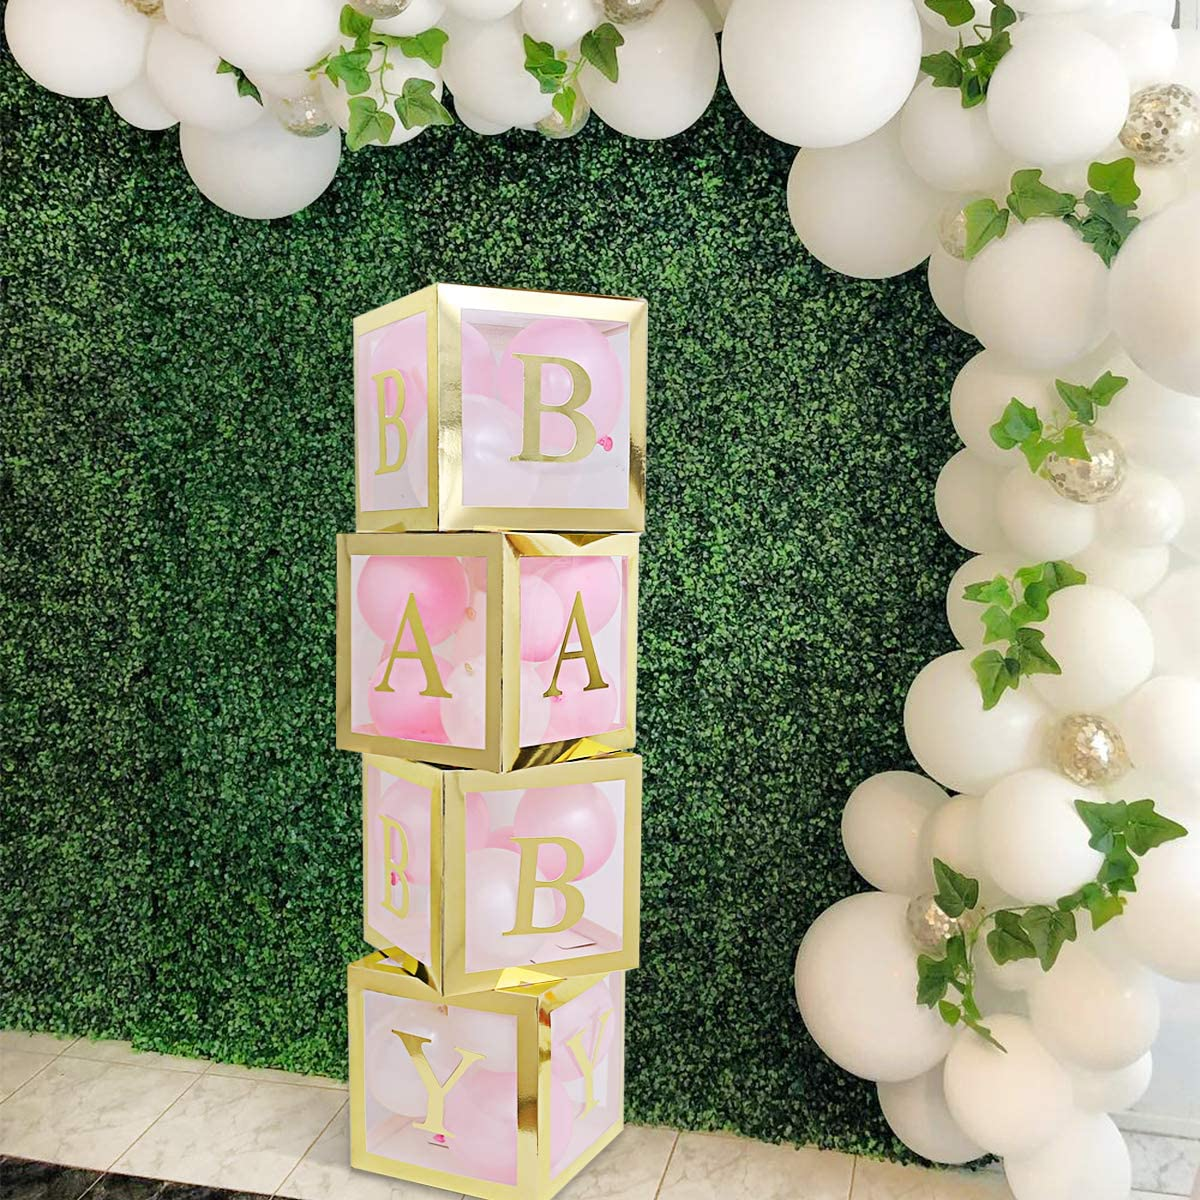 Baby Shower Boxes Party Decorations – 4 pcs Gold Transparent Partry Boxes Decor with Gold Letter, Individual BABY Blocks Design for Sunflower Baby Shower Bridal Showers Birthday Party Gender Reveal